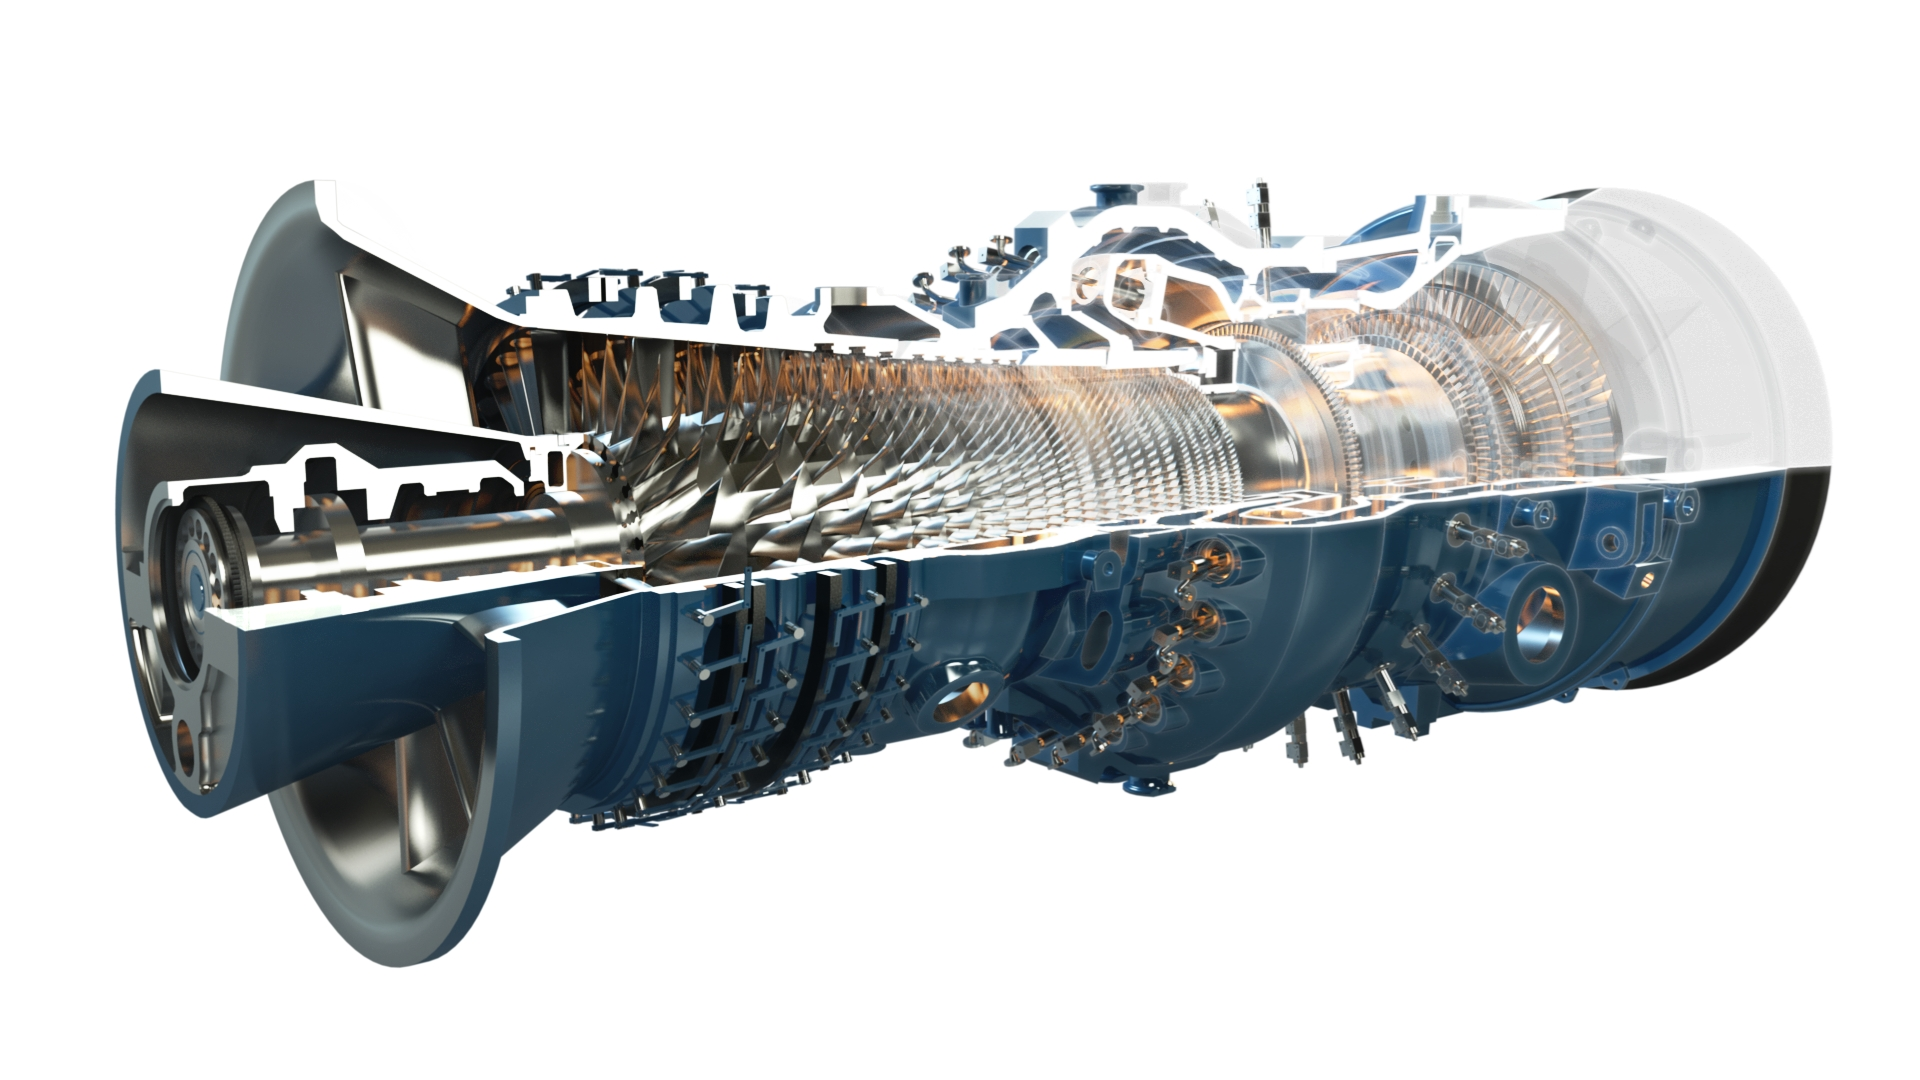 Alstom won €220M worth contracts for supply and maintenance of the